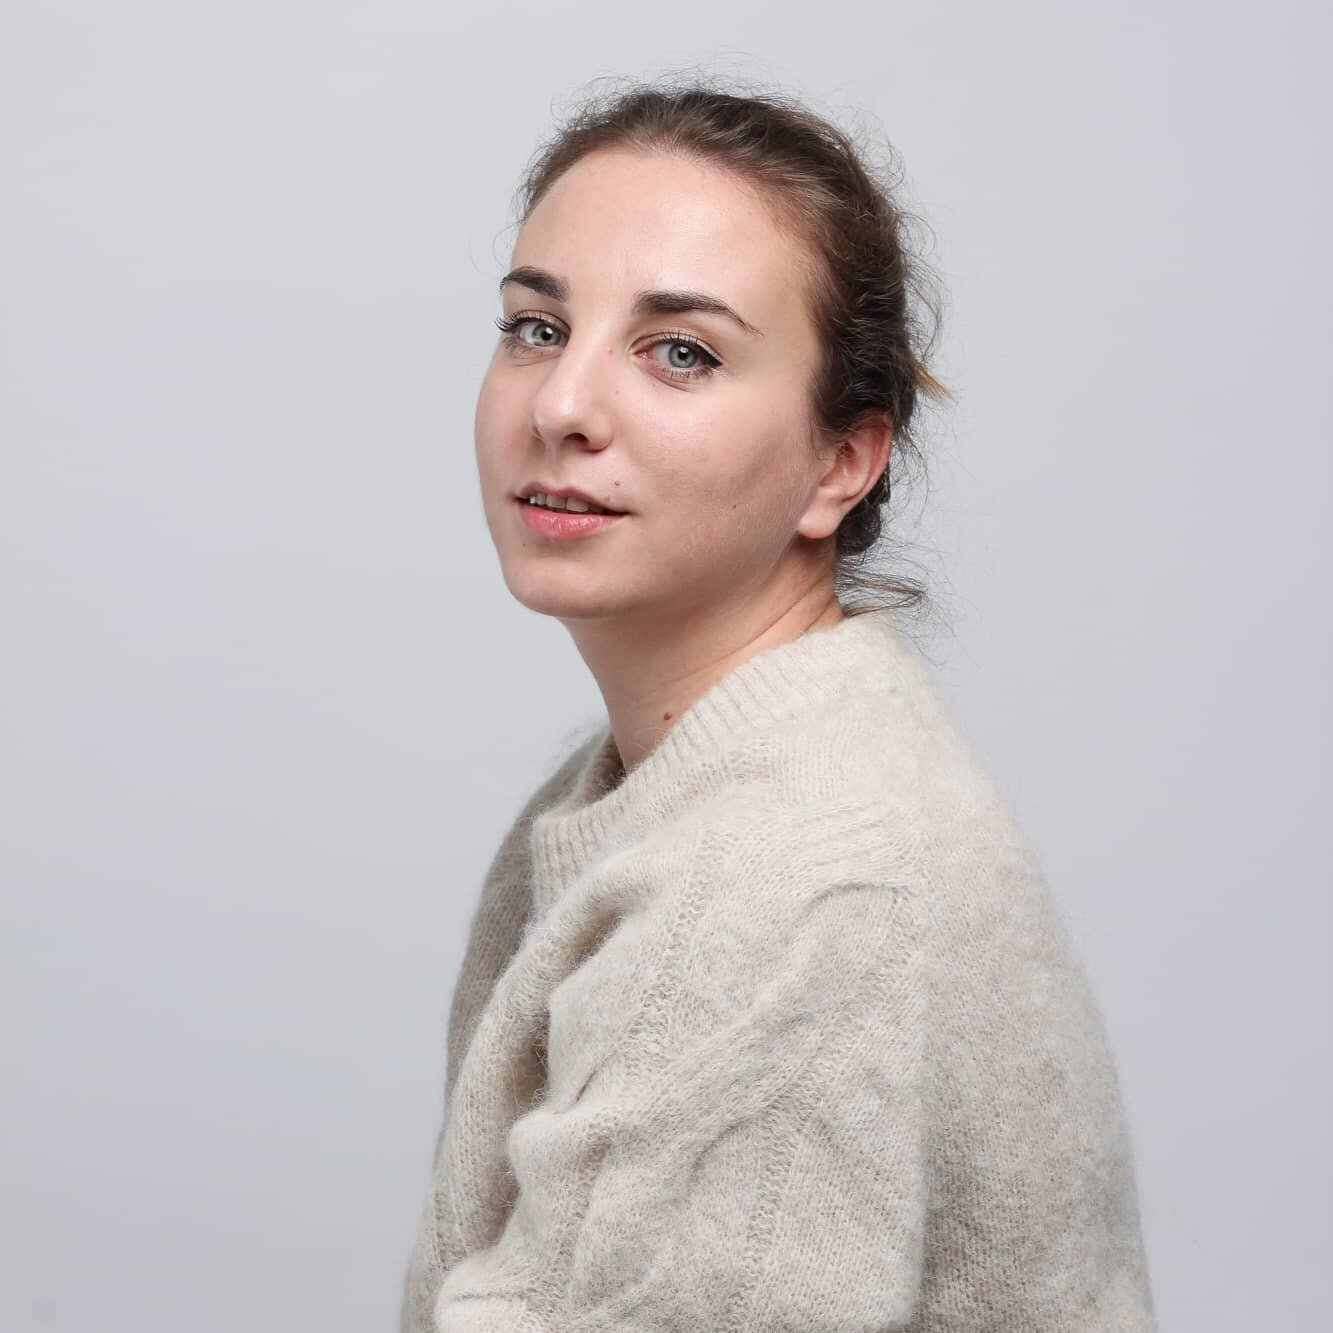 Say hello to our colleague Aleksandra! 👋  - - -  I come from Serbia where I started my programming career as a Full-stack web developer in an outsourcing company. The first programming language I encountered at the university was Java, but I quickly realized my love for JavaScript while trying to make a fan page for one of my favorite artists at the time. Three and a half years have passed since then - I still love JavaScript and everything around it. Apart from that, I love animals and nature, and in my free time, I'm trying to be artsy by playing the piano.  I started working at Mirado in February 2020, and I'm currently on an assignment at Agria Vårdguide as a Full-stack JavaScript developer. Being a part of a project involved with helping animals feels like a dream come true since, as a child, I've dreamt of becoming a vet.  In Mirado, you're in a group of experienced, sharp, and fun people who are always willing to help and share their knowledg